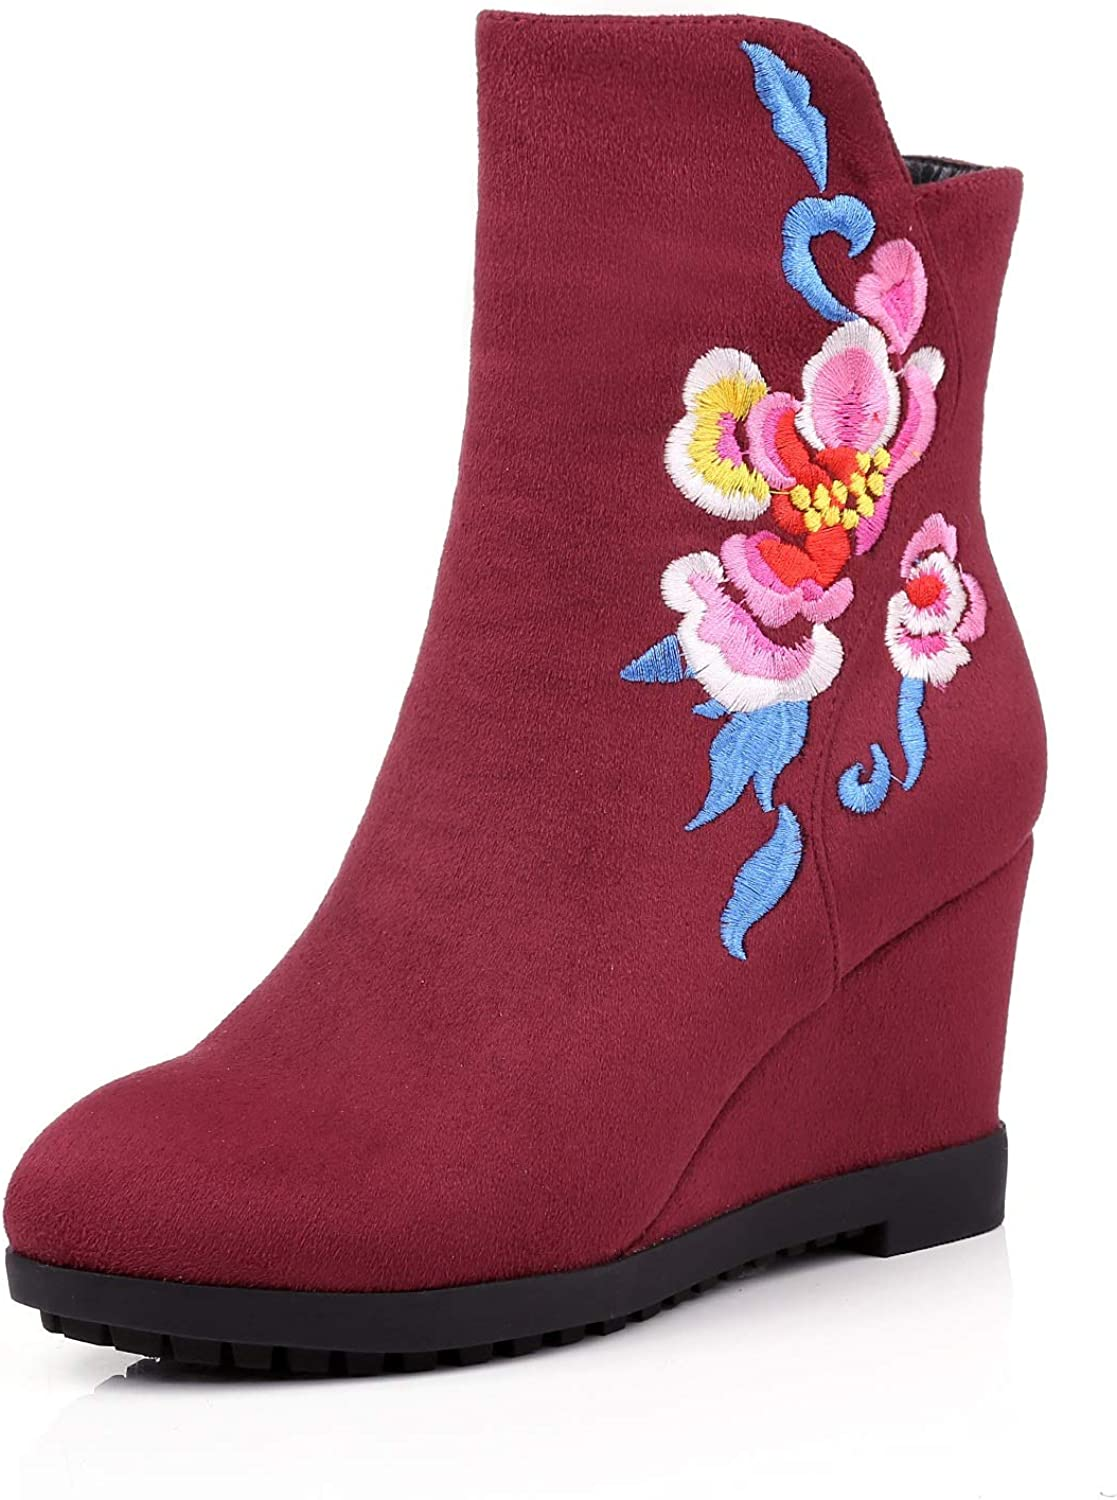 Women's Booties, Side Zipper Plus Velvet Cloth shoes Ladies Fall Winter New Wedge Embroidered Fashion Boots Ankle Boots (color   A, Size   38)